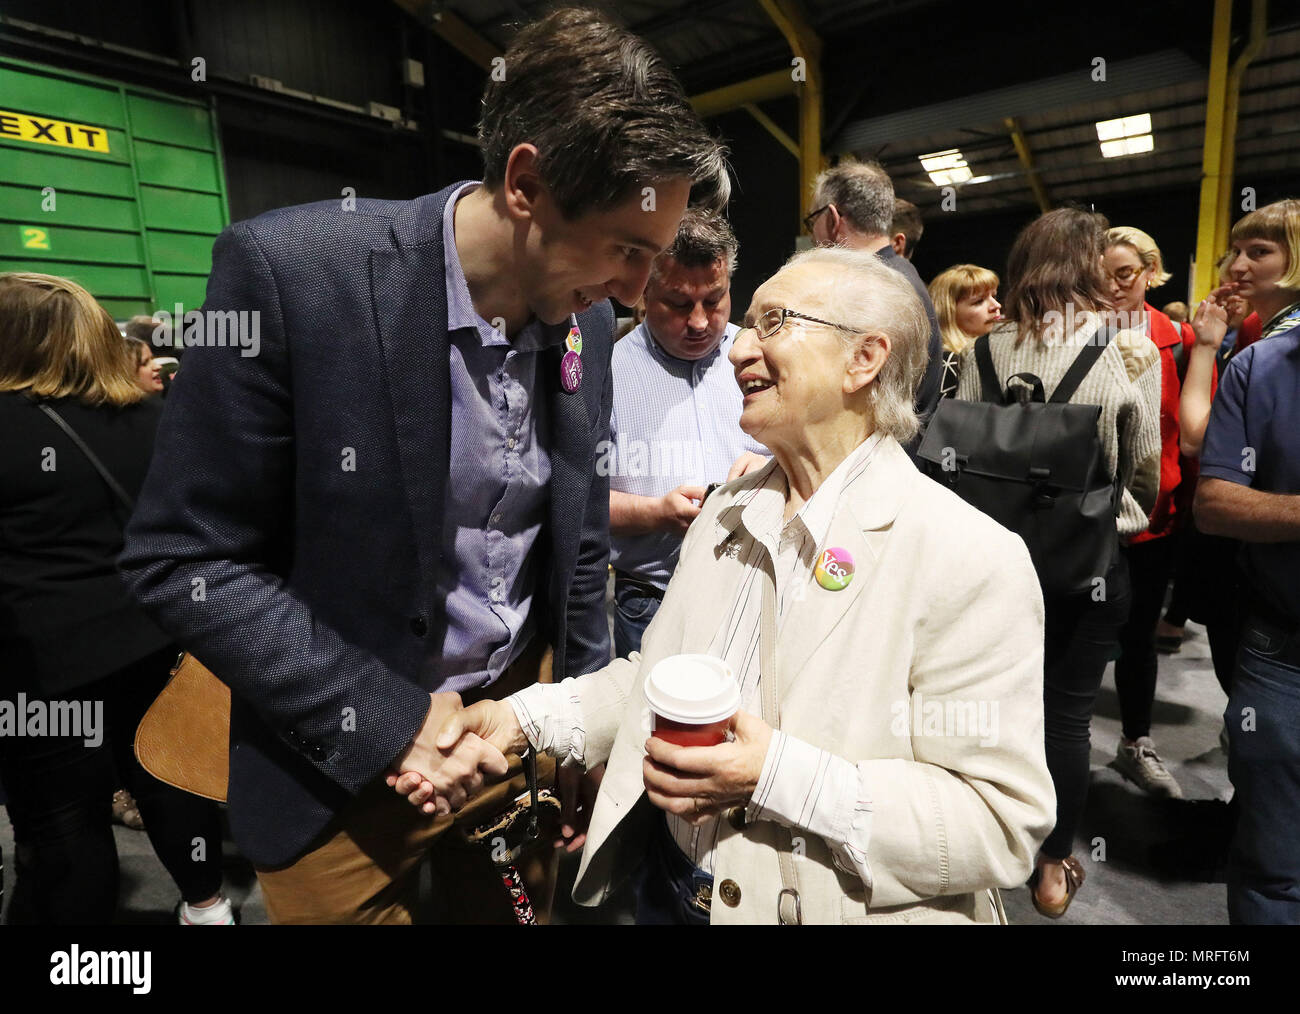 Minister for Health Simon Harris is greeted by retired Supreme Court judge Catherine McGuinness on arrival at the count centre in Dublin's RDS as votes are counted in the referendum on the 8th Amendment of the Irish Constitution which prohibits abortions unless a mother's life is in danger. Picture date: Saturday May 26, 2018. See PA story IRISH Abortion. Photo credit should read: Brian Lawless/PA Wire - Stock Image